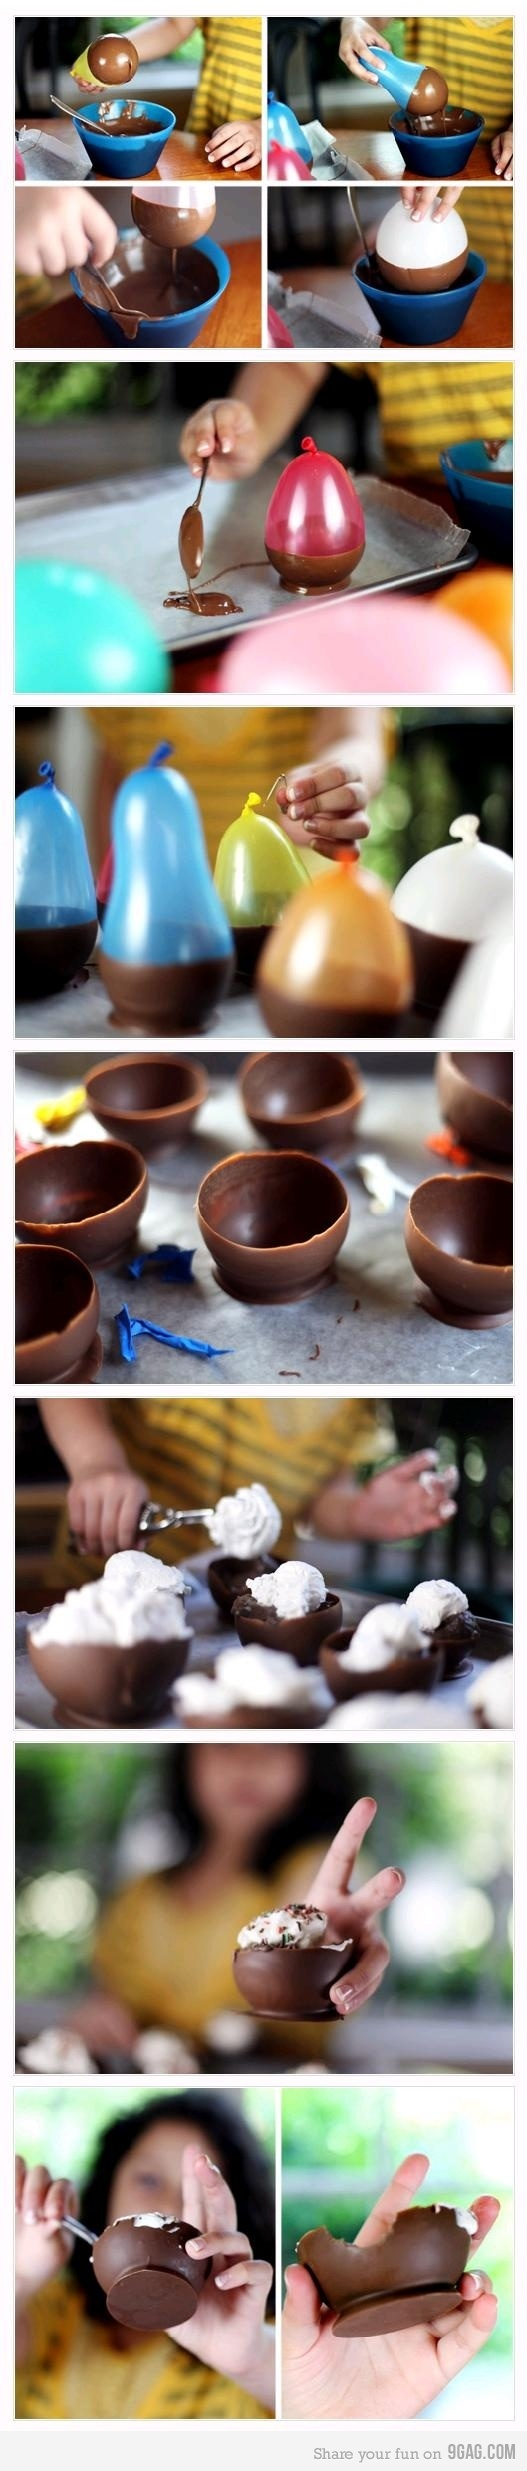 Chocolate dessert cups - definitely going to try this!